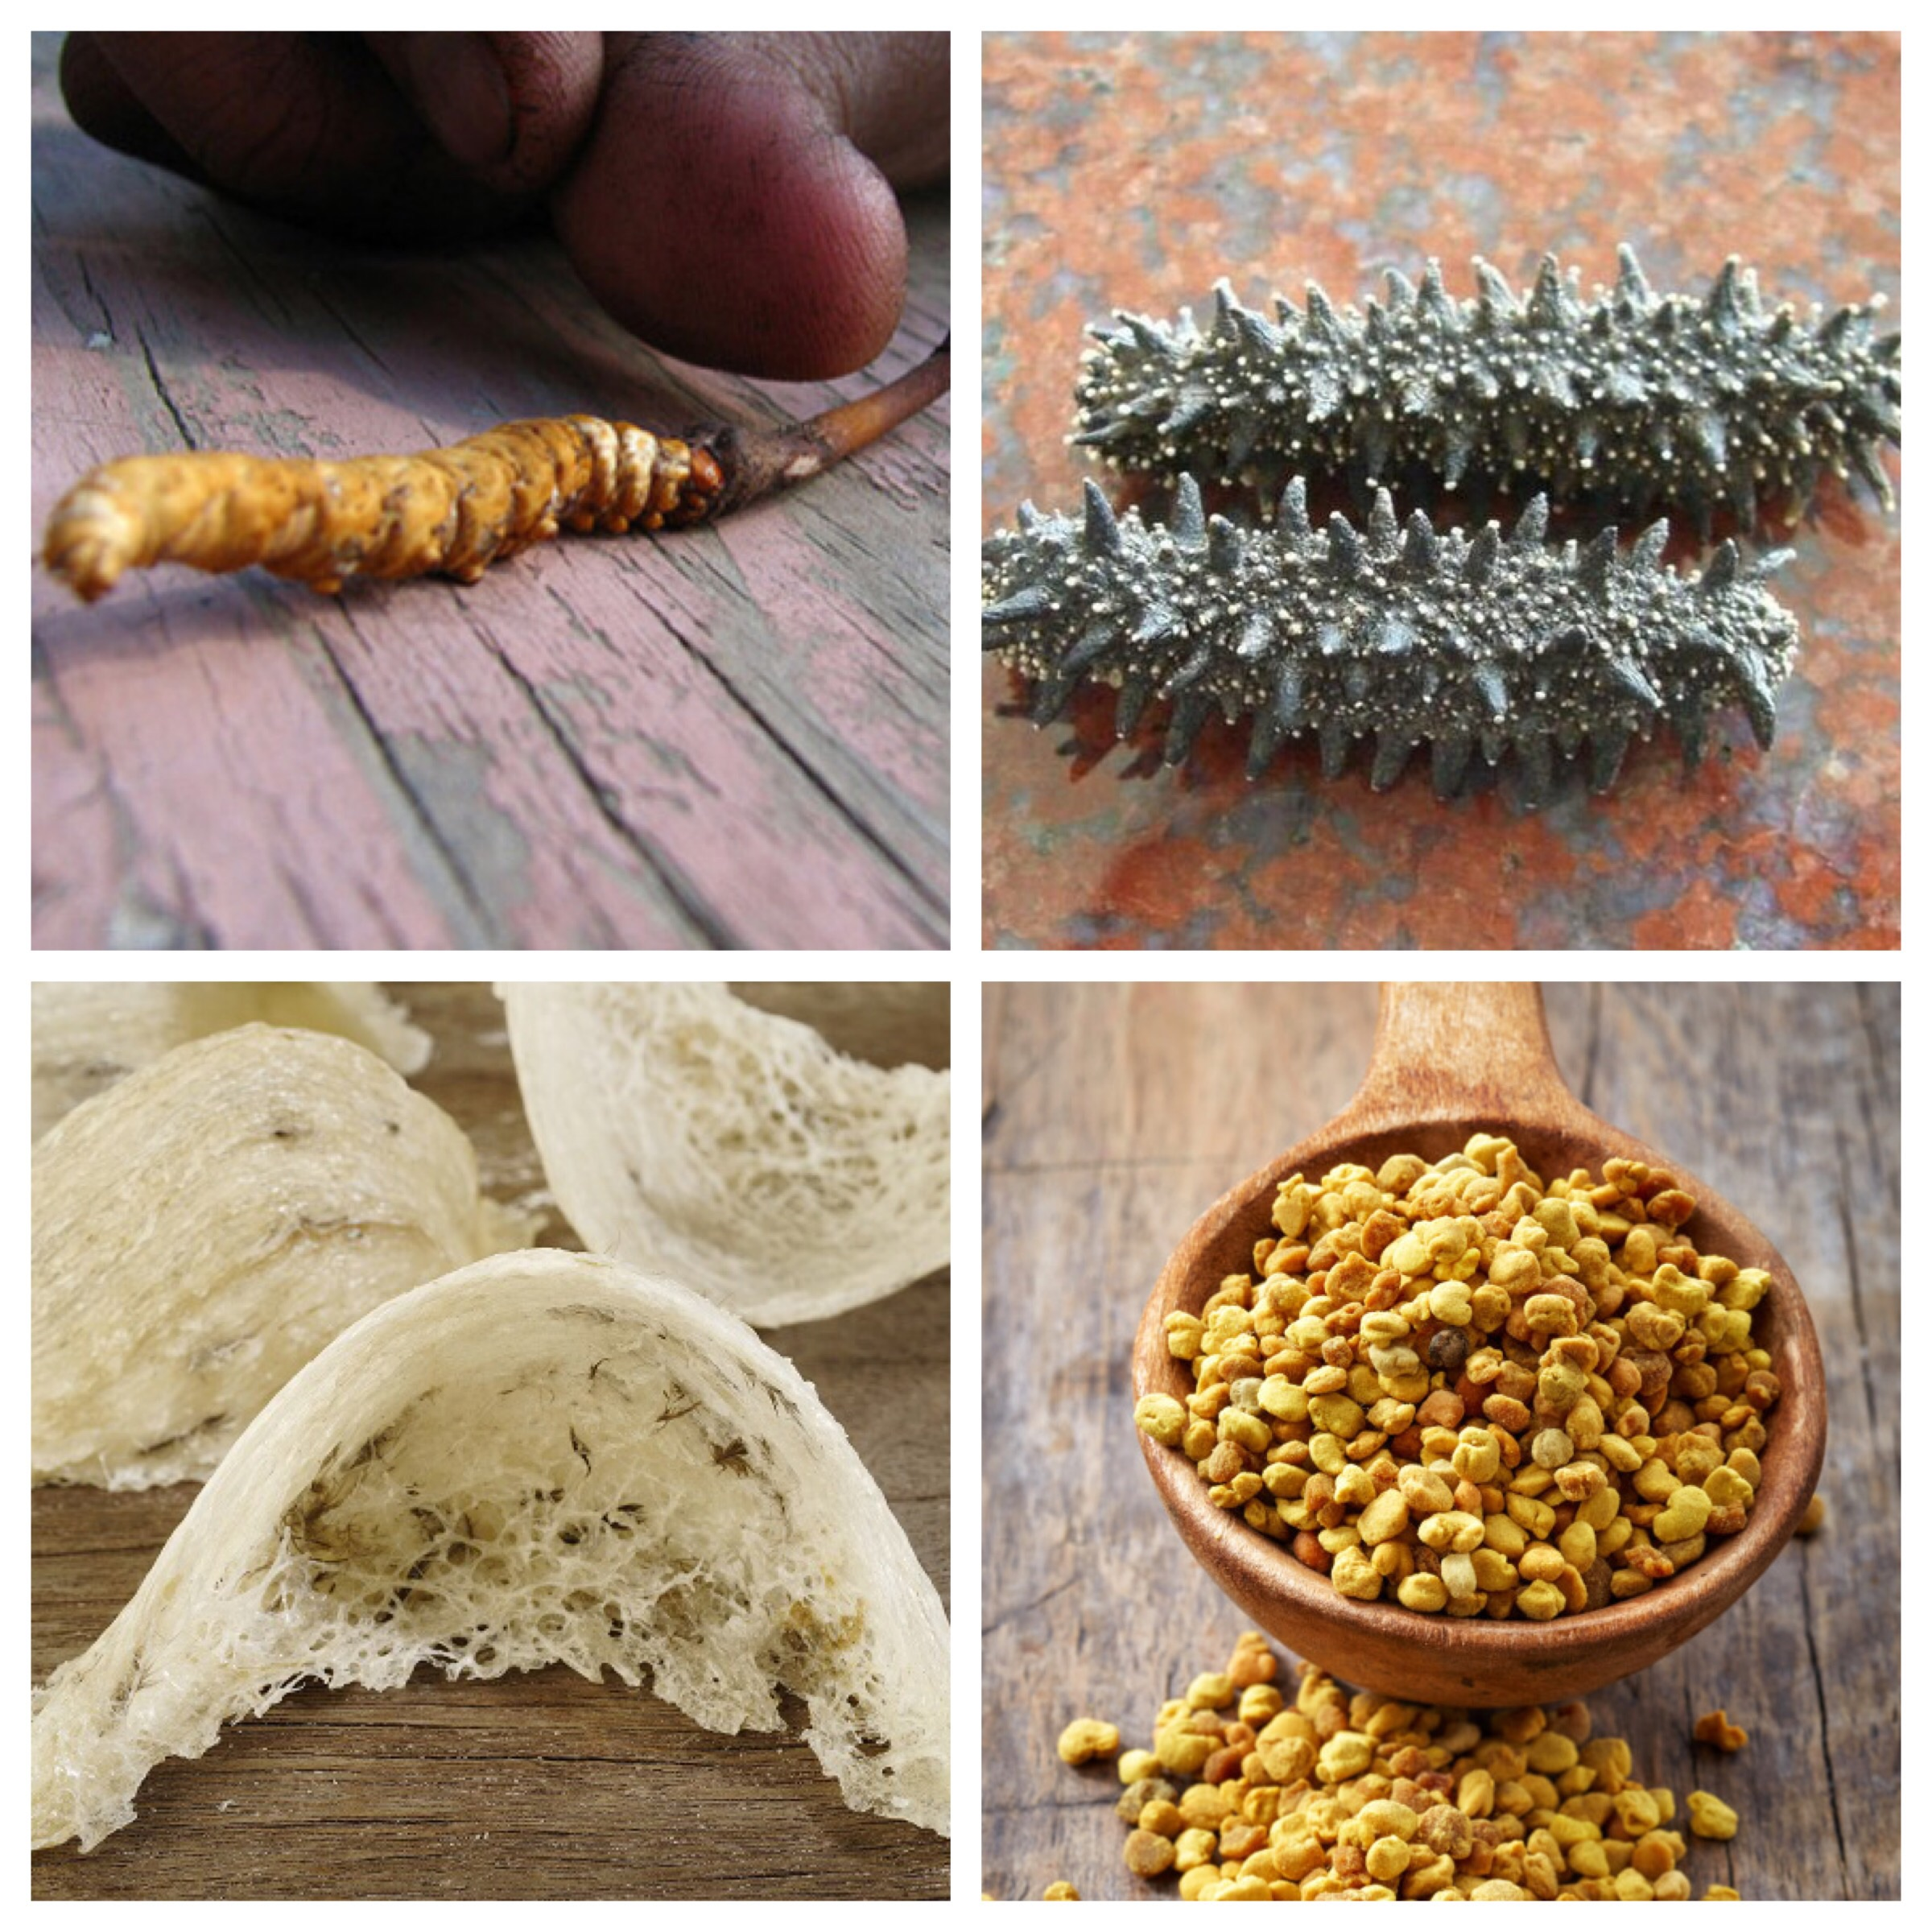 Top left and clockwise; caterpillar fungus, sea cucumber, bee pollen and birds' nests.